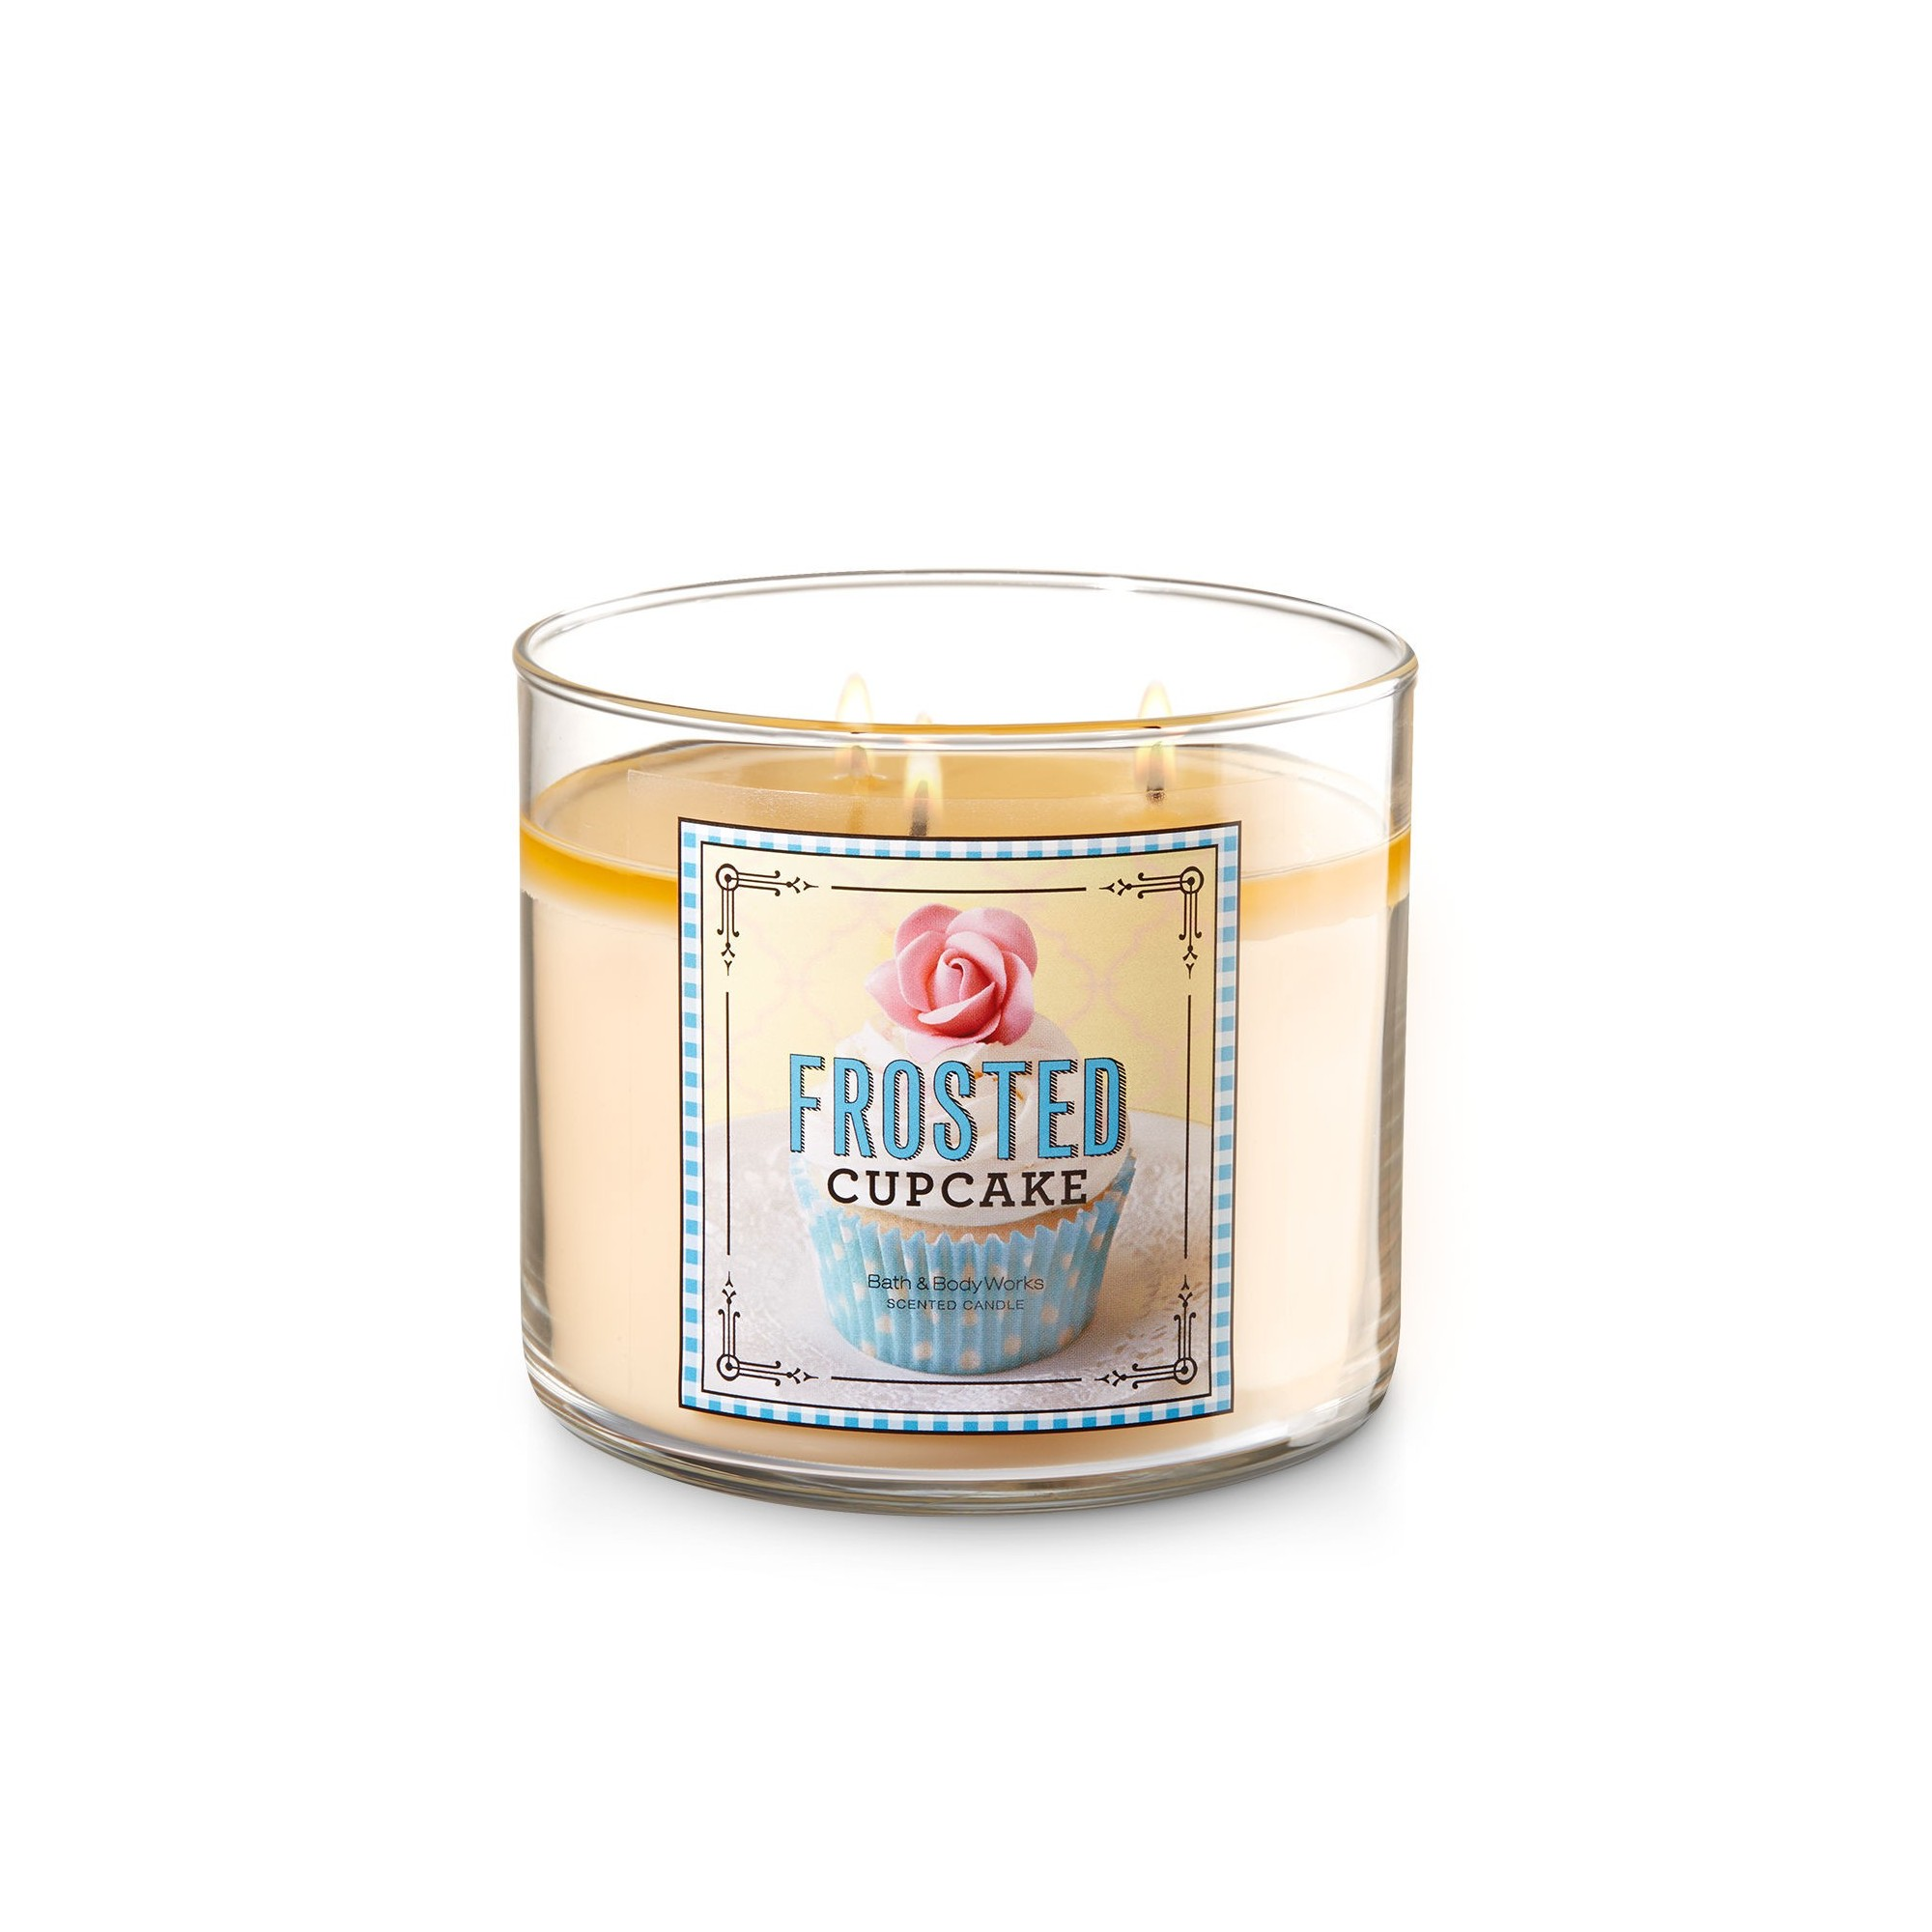 Bath & Body Works Frosted Cupcake 3 Wick Scented Candle